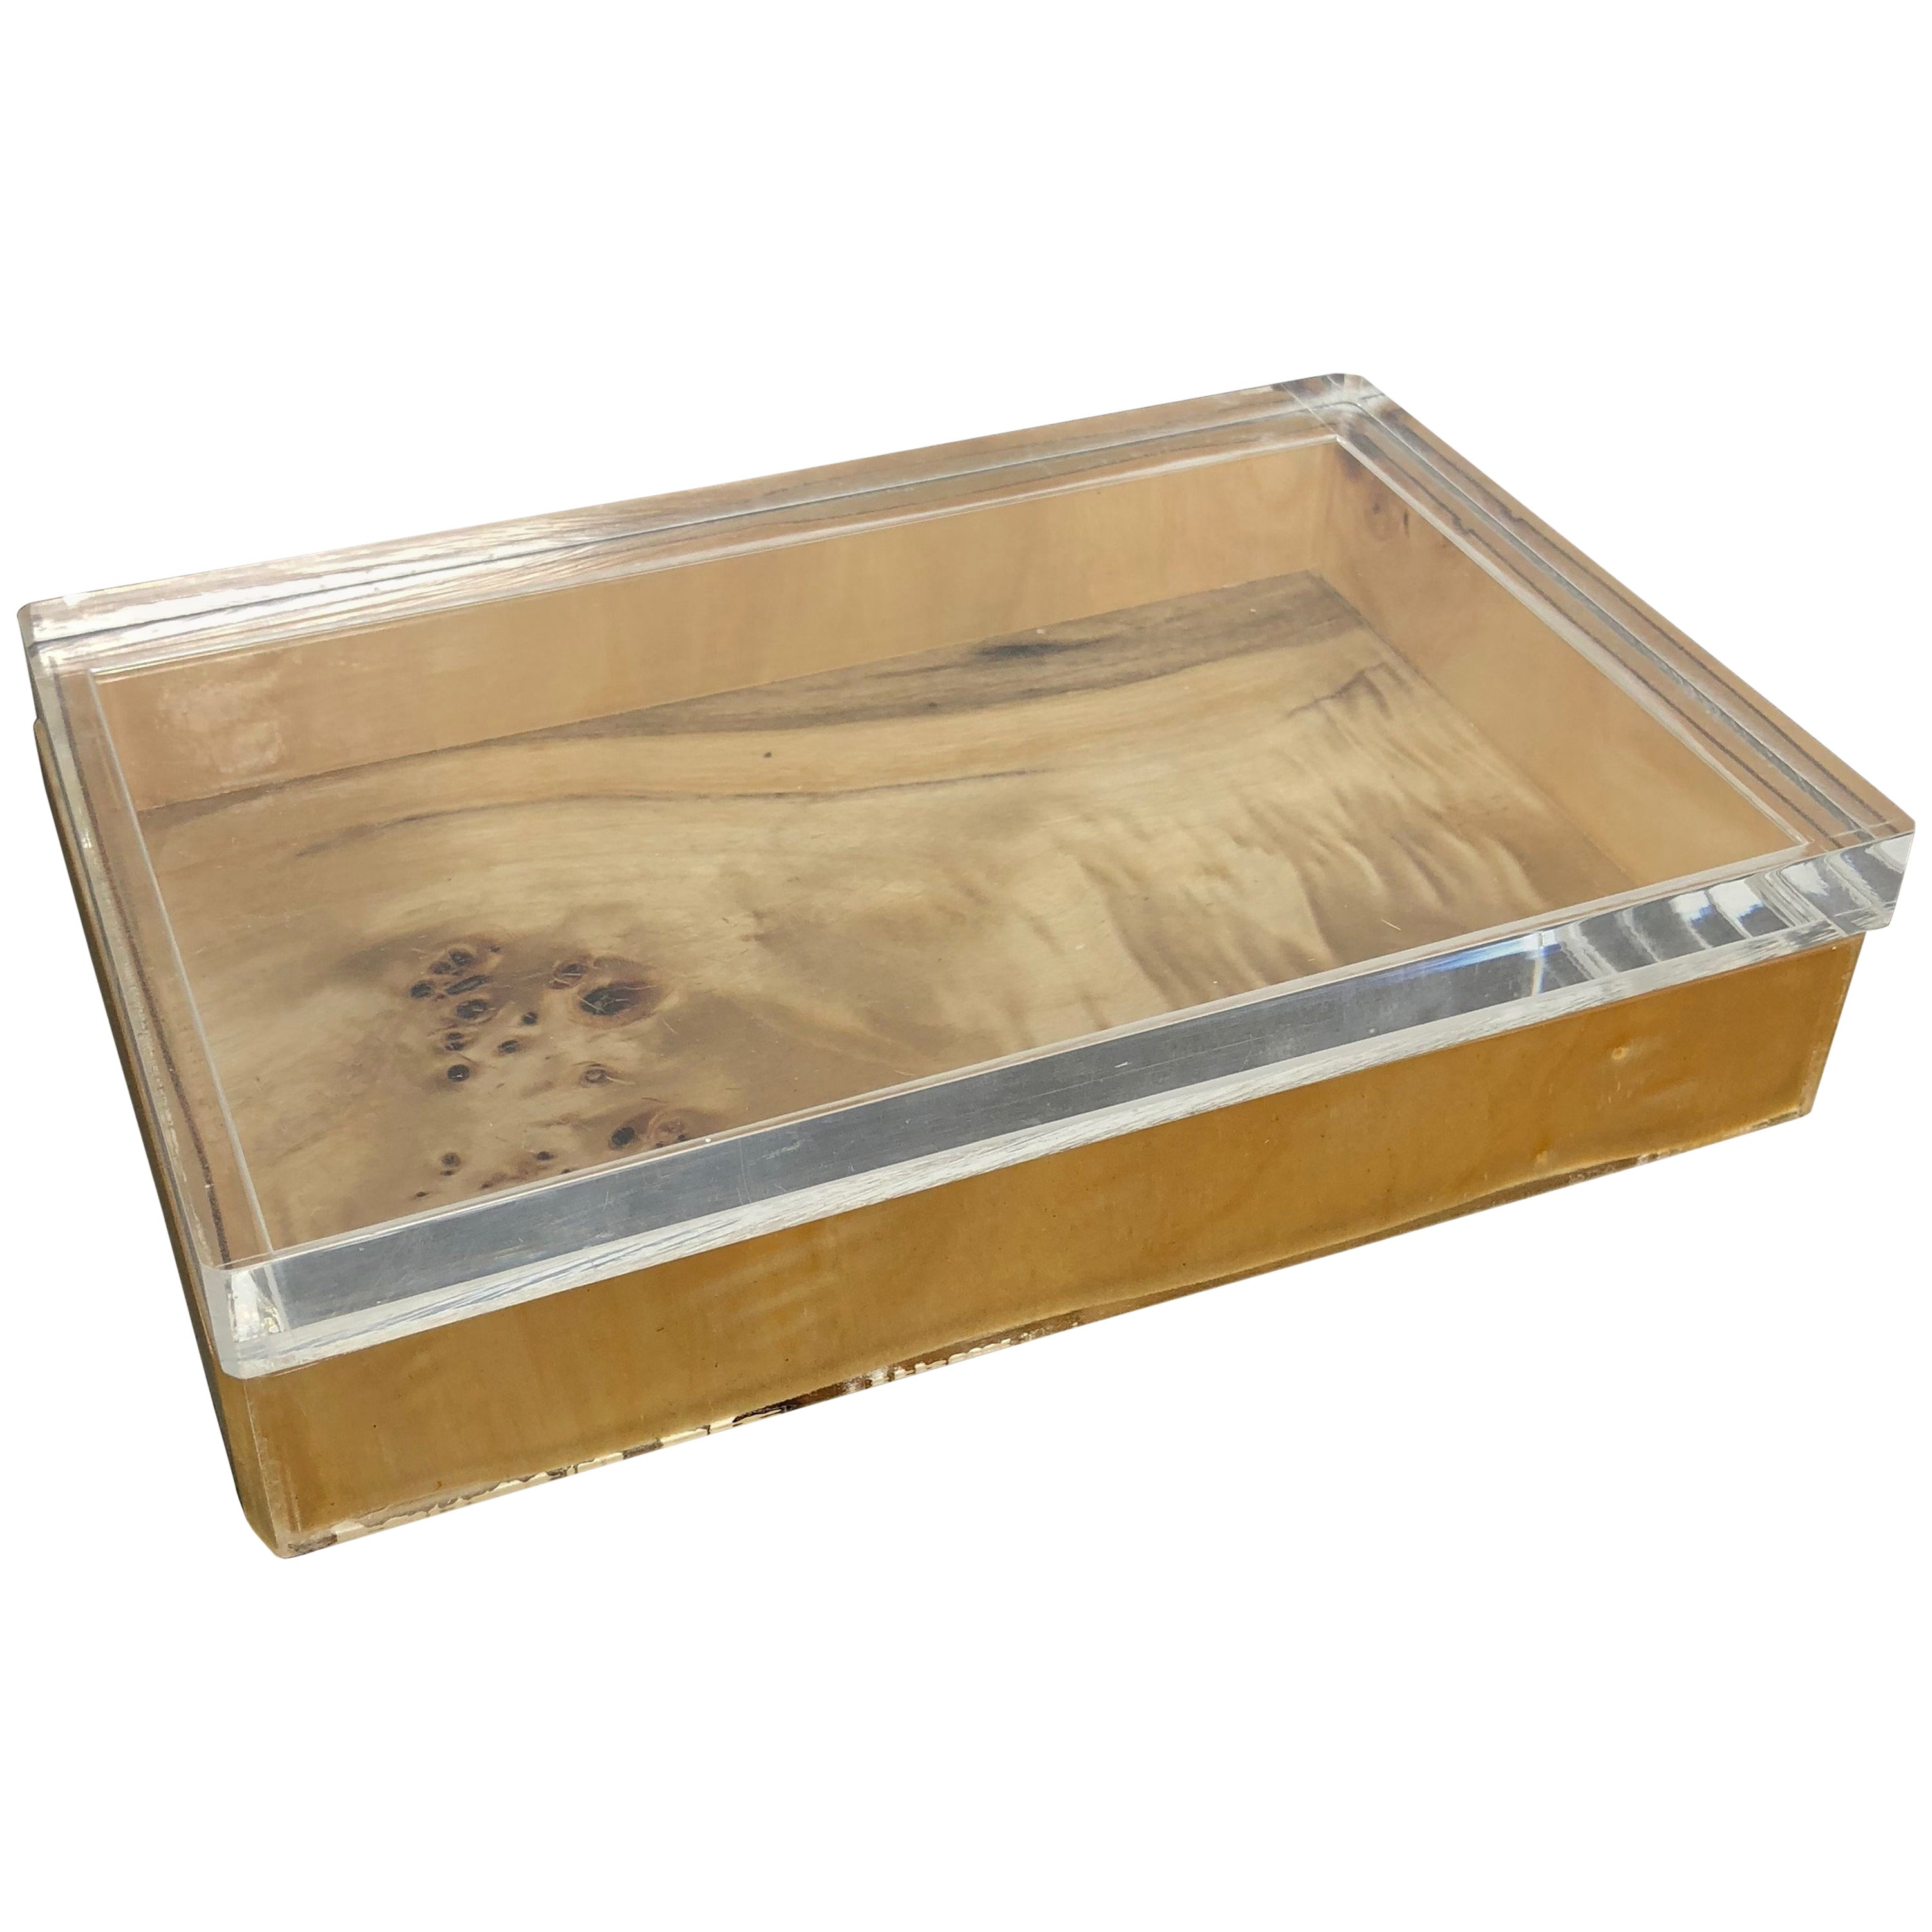 1970s Modernist Box in Lucite and Lacquered Wood